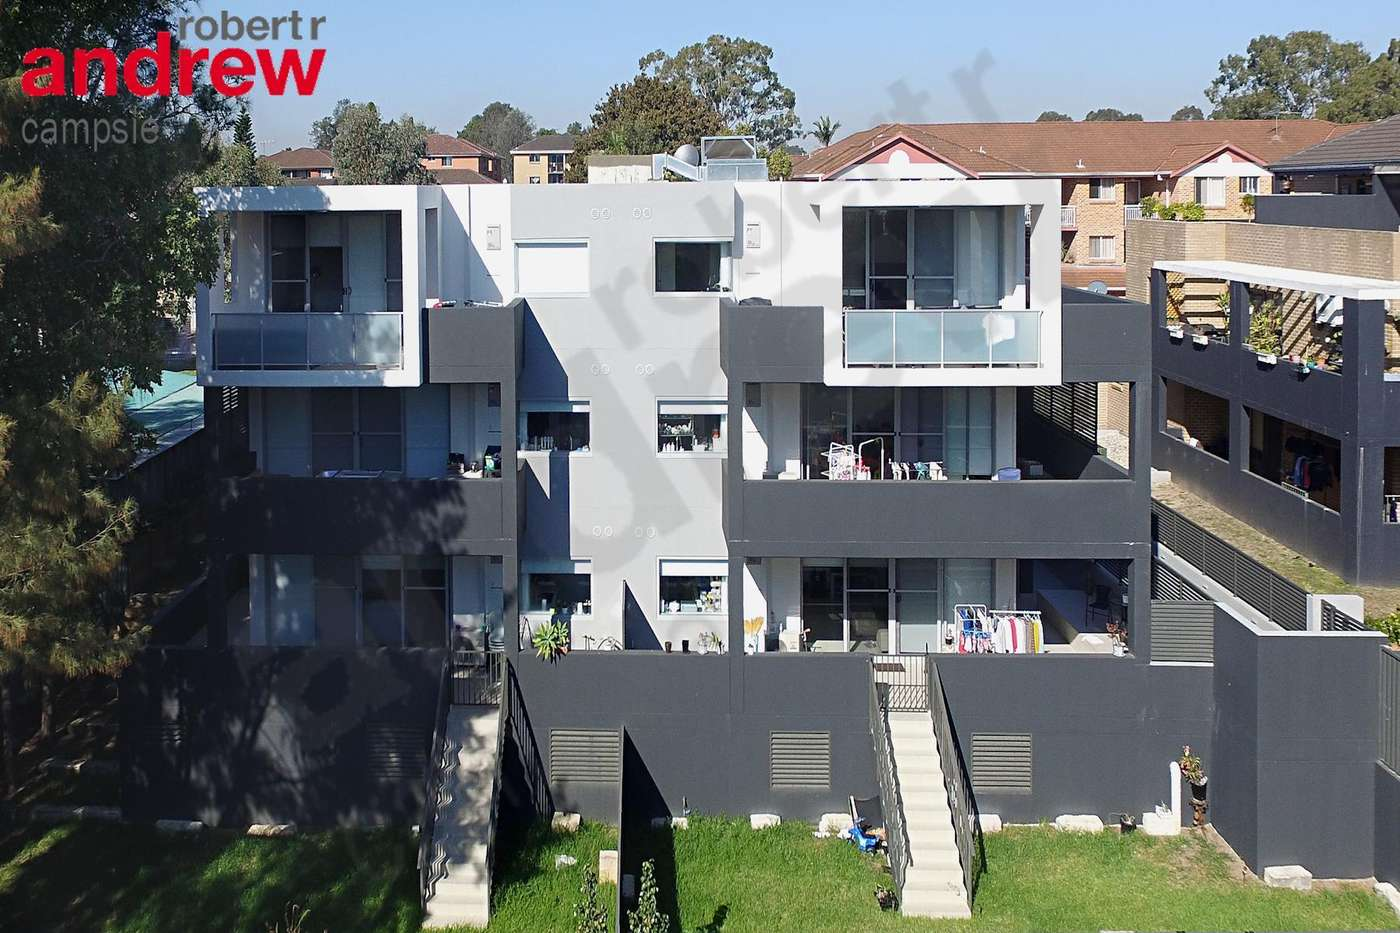 Main view of Homely apartment listing, 7/67C Second Avenue, Campsie, NSW 2194